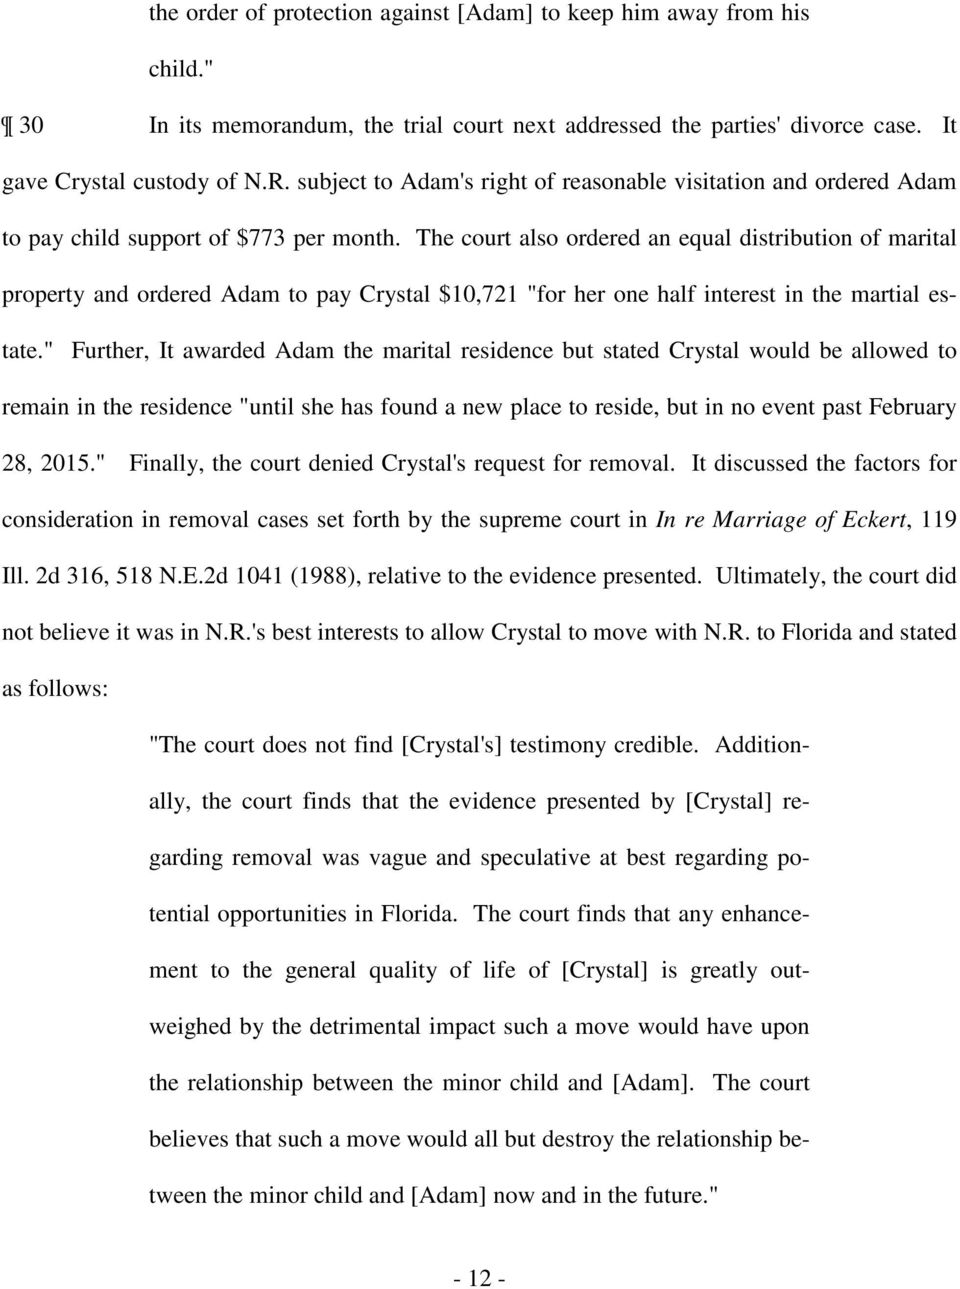 "The court also ordered an equal distribution of marital property and ordered Adam to pay Crystal $10,721 ""for her one half interest in the martial estate."